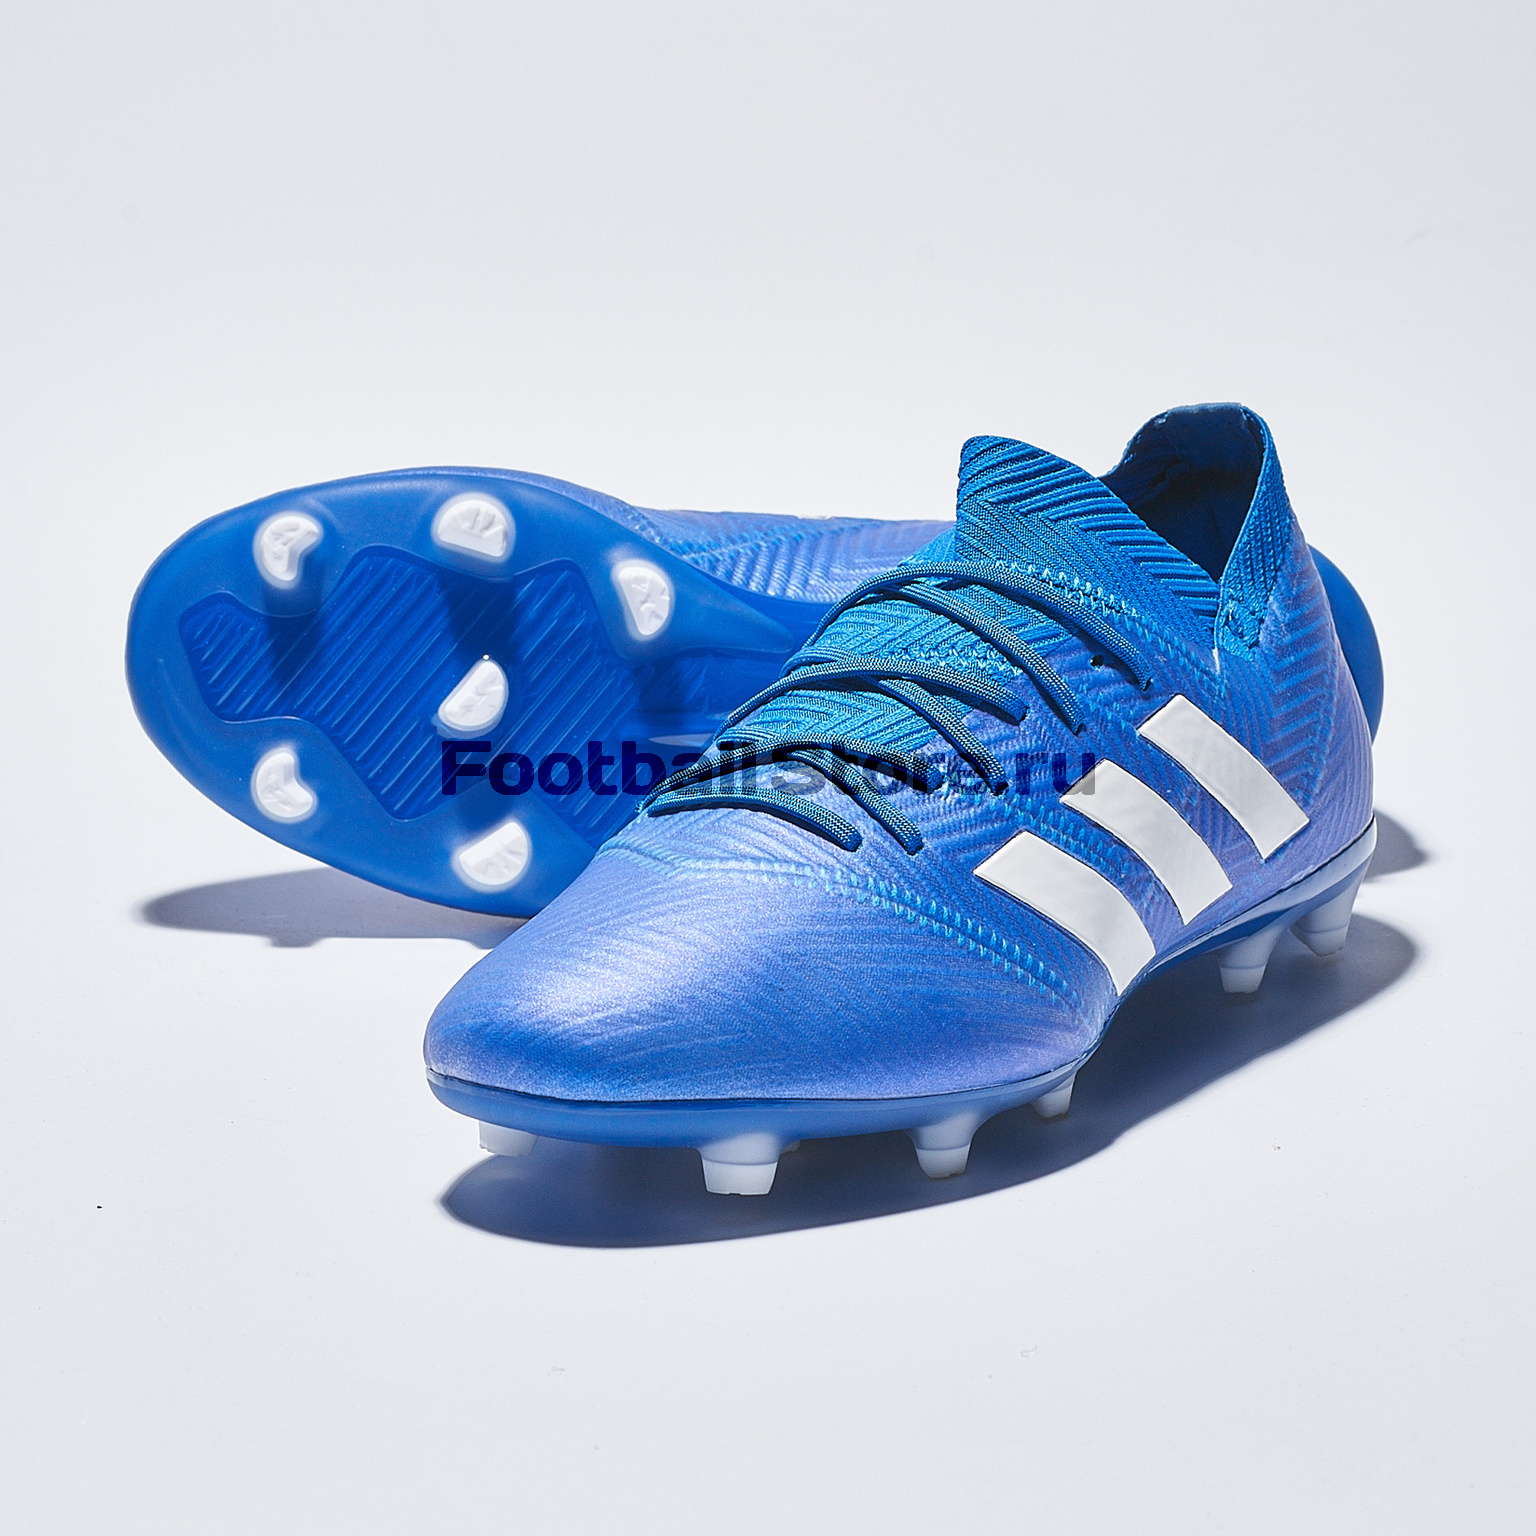 Бутсы детские Adidas Nemeziz 18.1 FG touch screen for ab 2711p b7c1d6 2711p b7c10d6 2711p b7c1d2 2711p b7c10d2 panelview plus ce